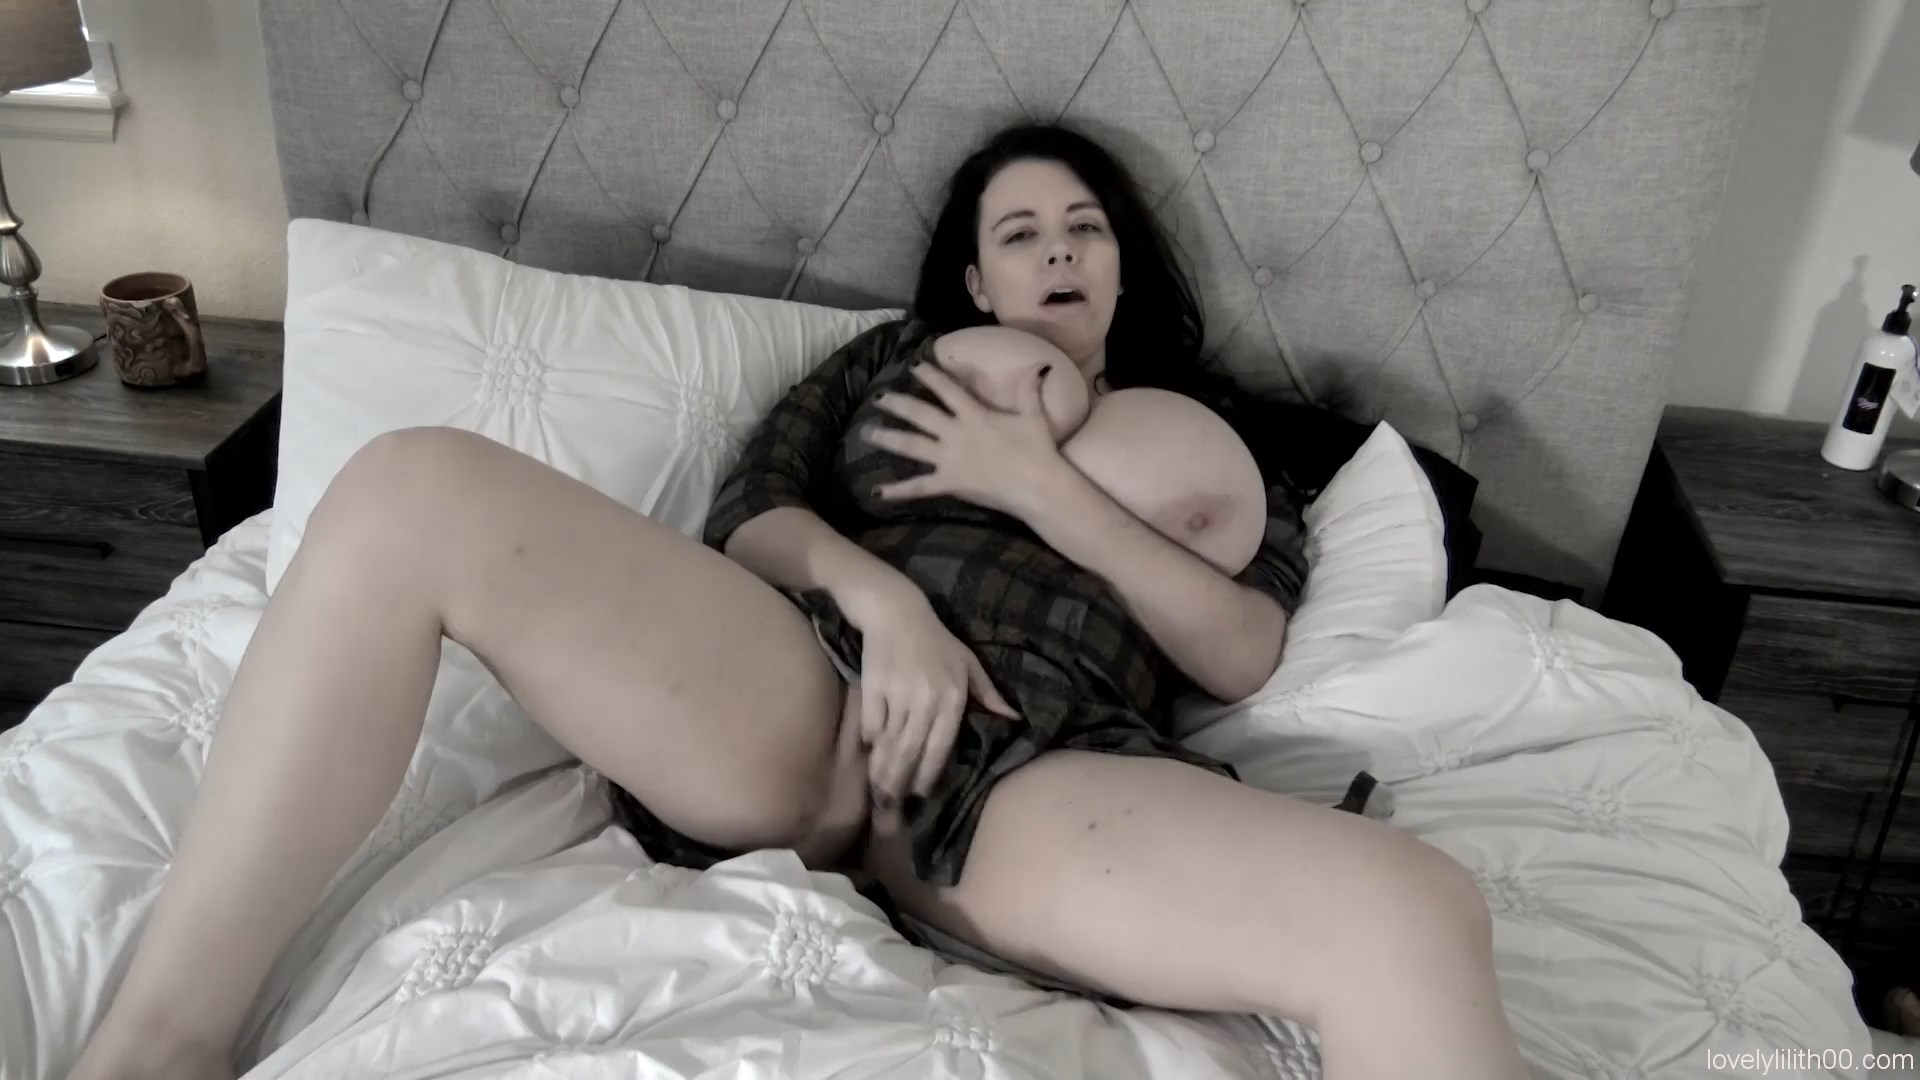 Lovely Lilith - Freudian Tits